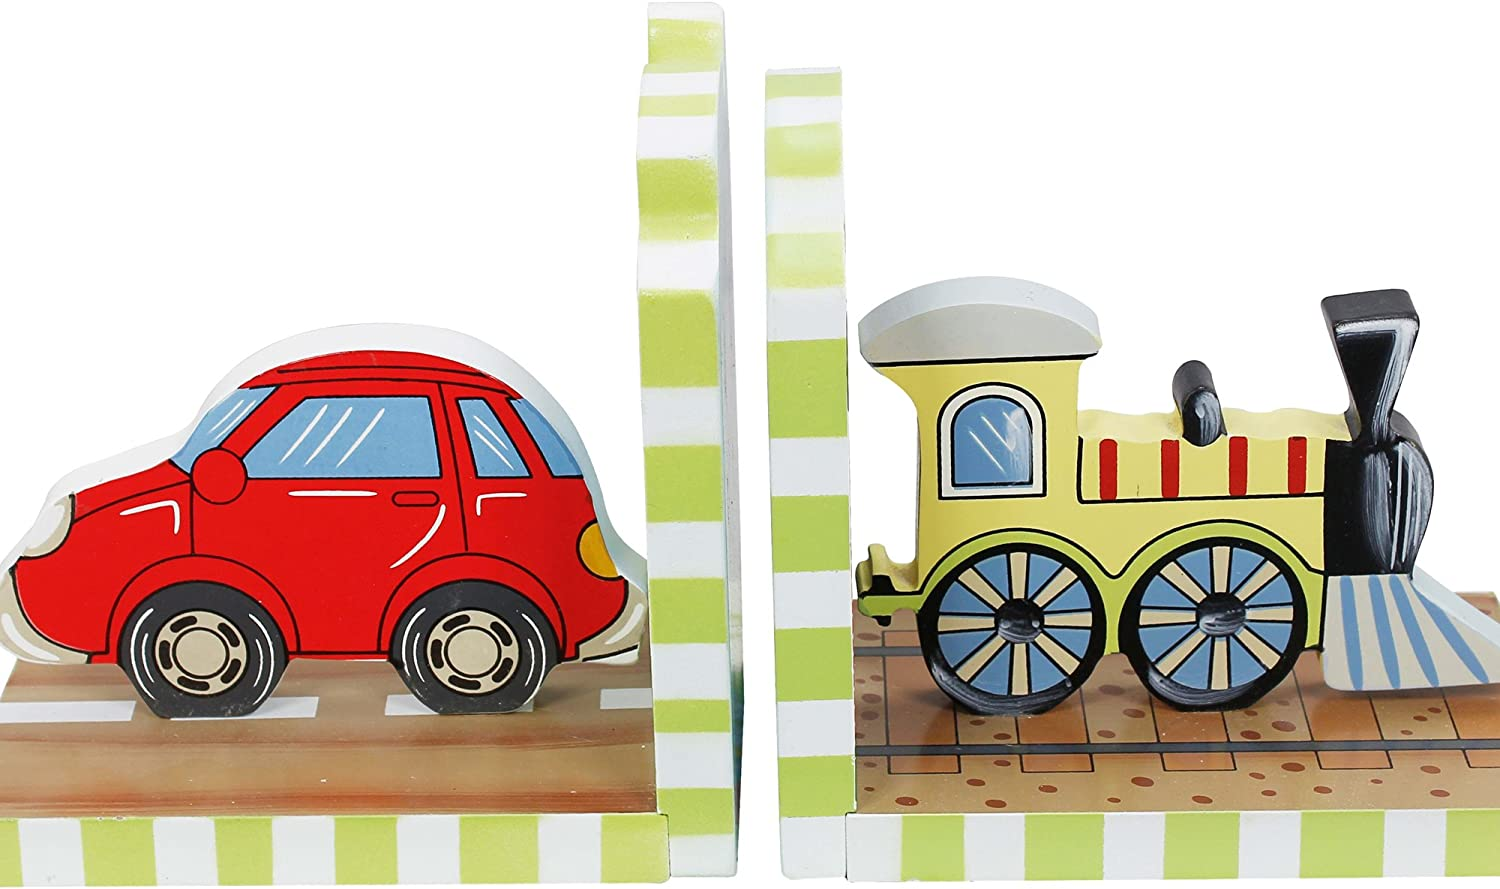 Fantasy Fields - Transportation Thematic Set of 2 Wooden Bookends for Kids   Imagination Inspiring Hand Crafted & Hand Painted Details   Non-Toxic, Lead Free Water-based Paint